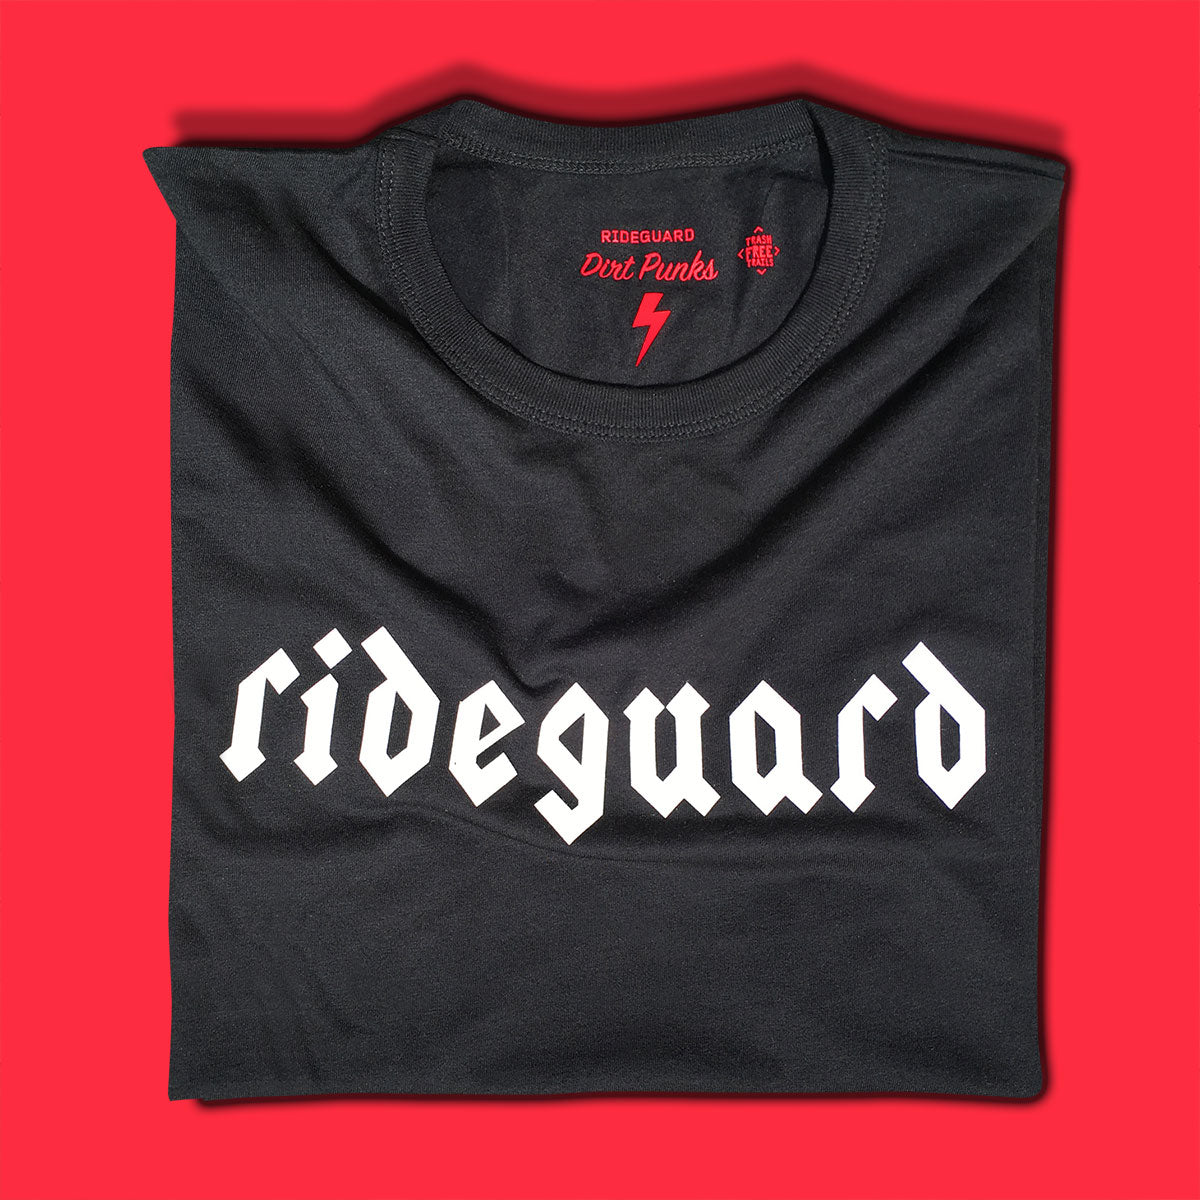 RideGuard Dirt Punks Lady Luck T-Shirt Tee